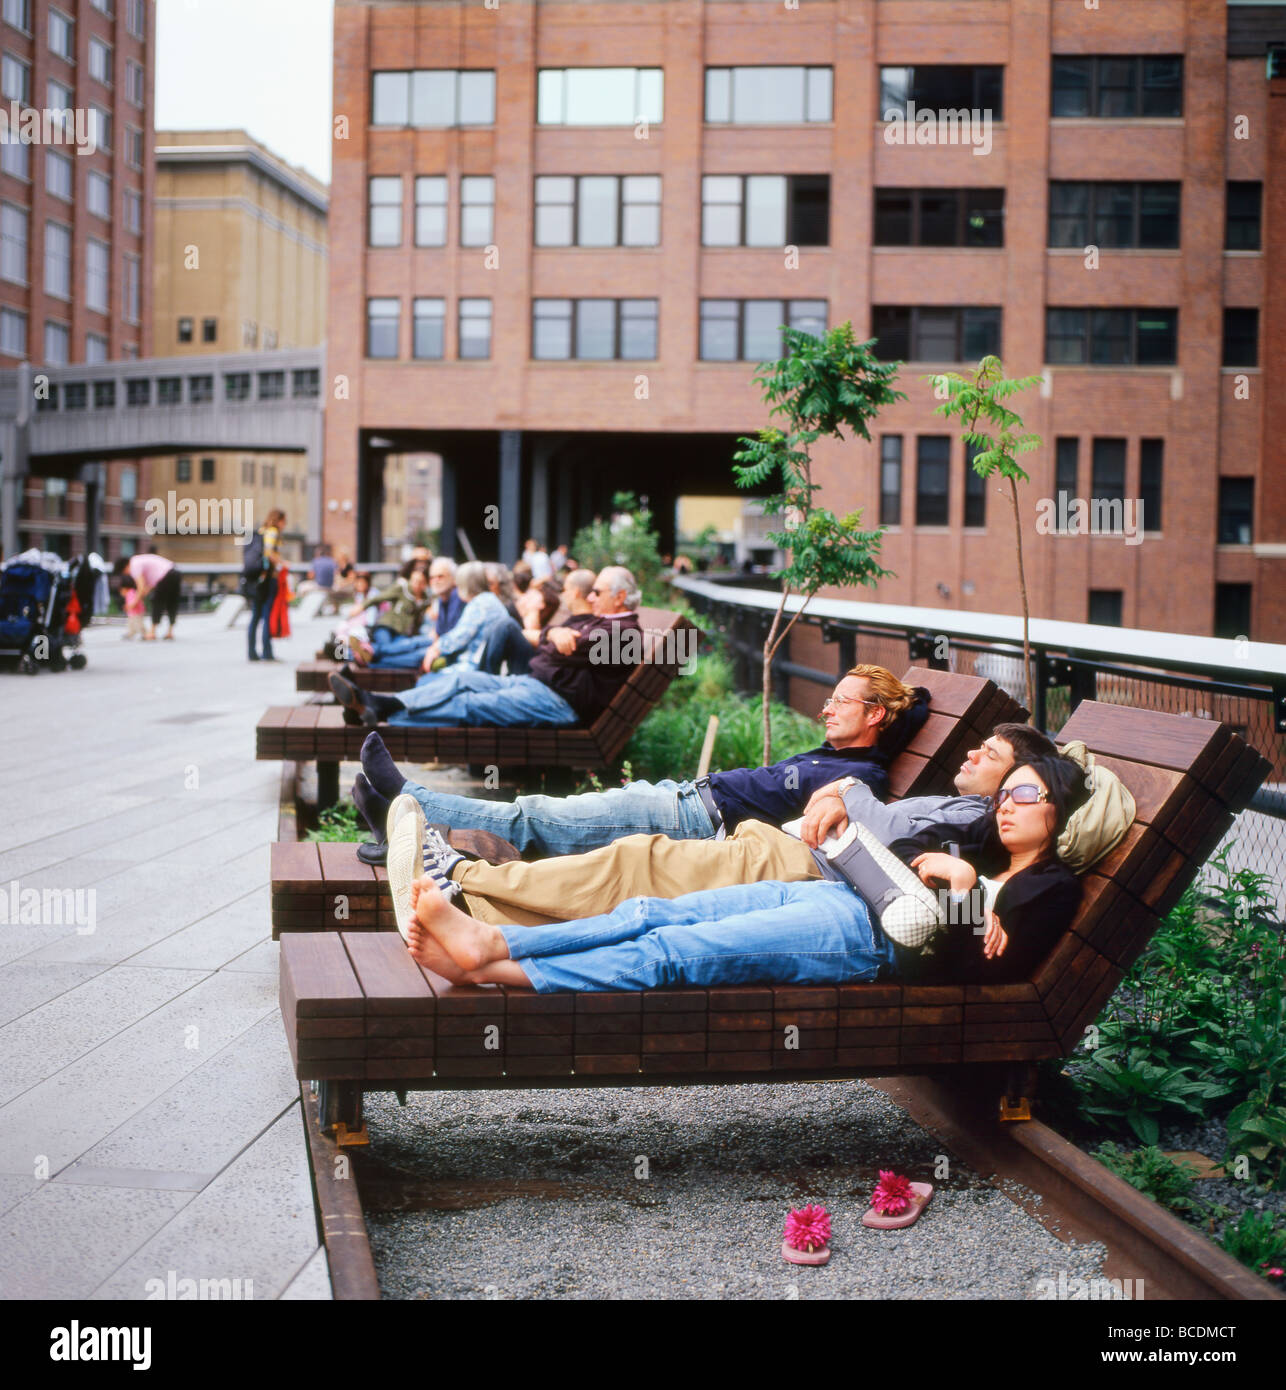 People Relaxing On Ipe Wood Chaise Lounge Furniture On The New High Line  Park New York City NYC USA